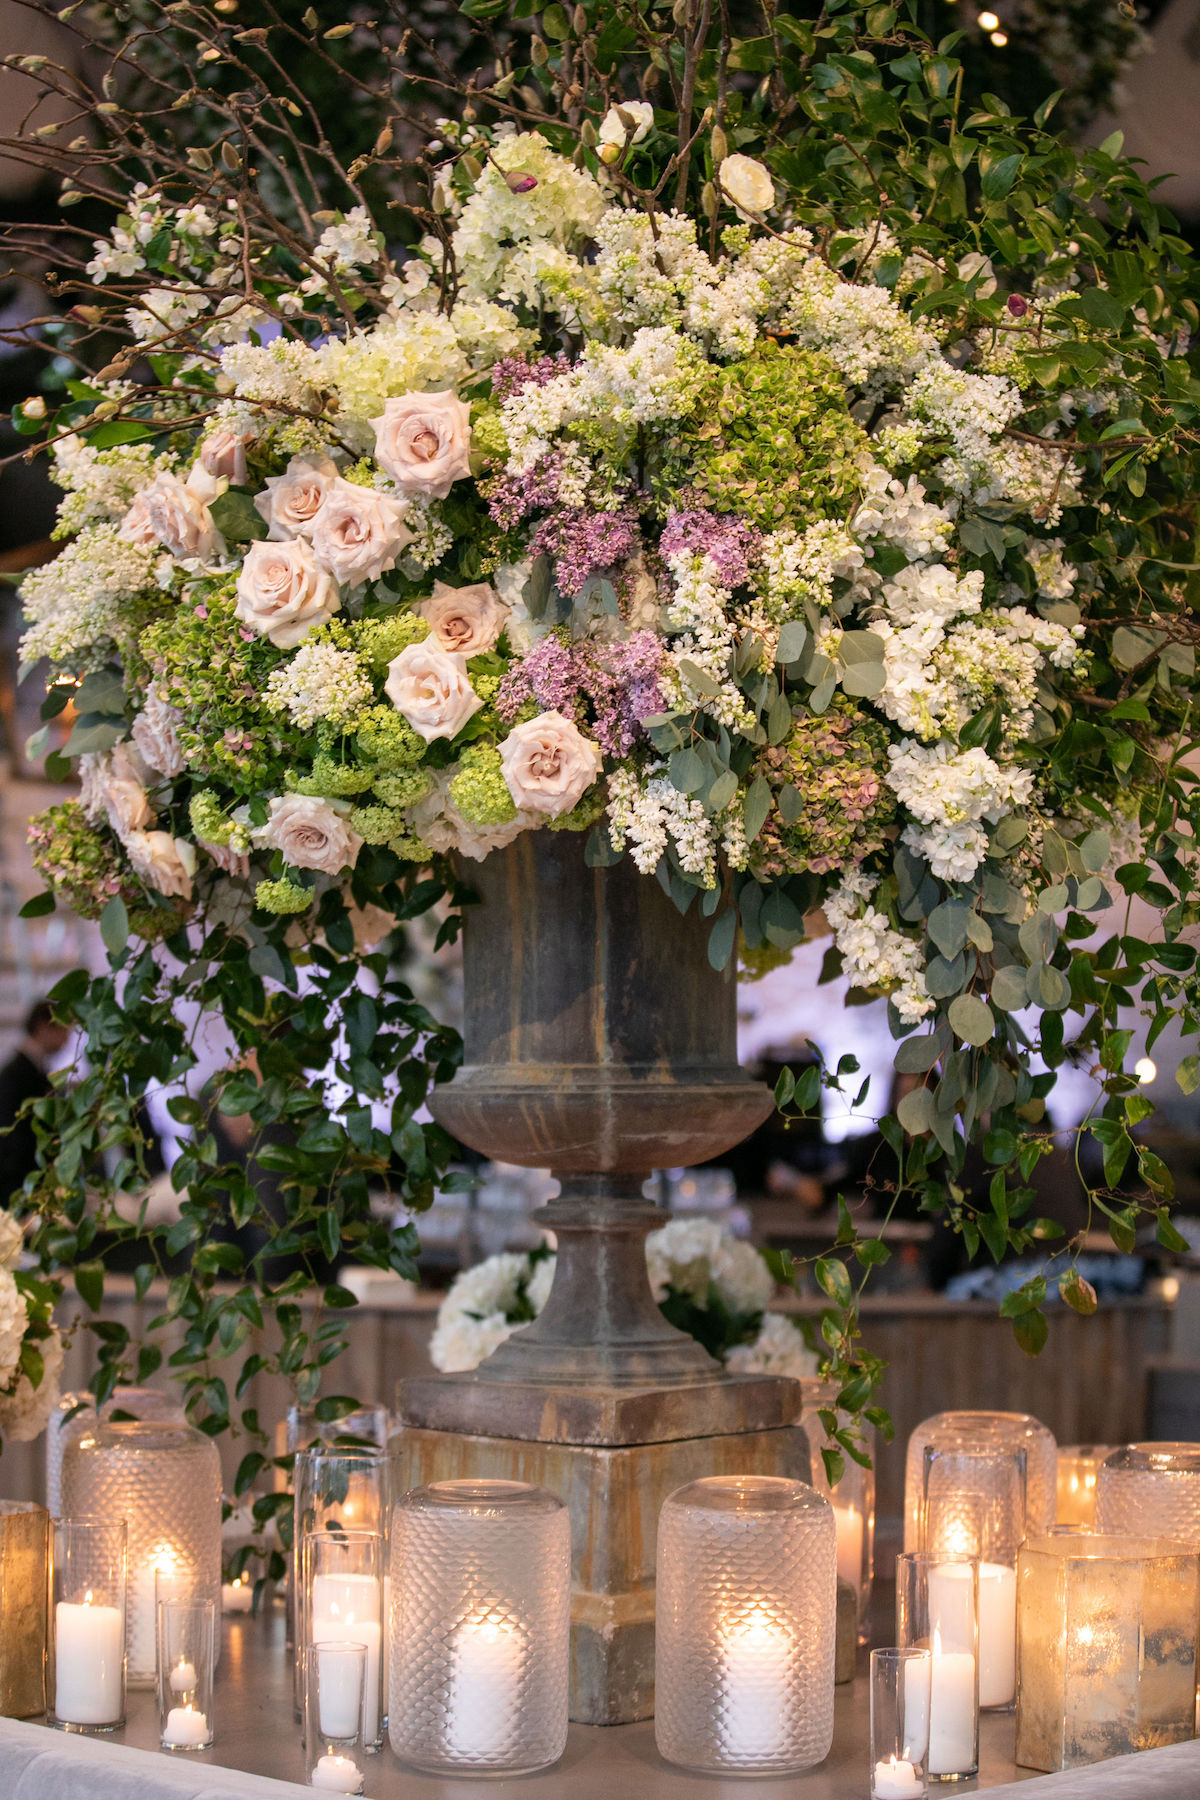 brighton keller wedding decor flowers 2